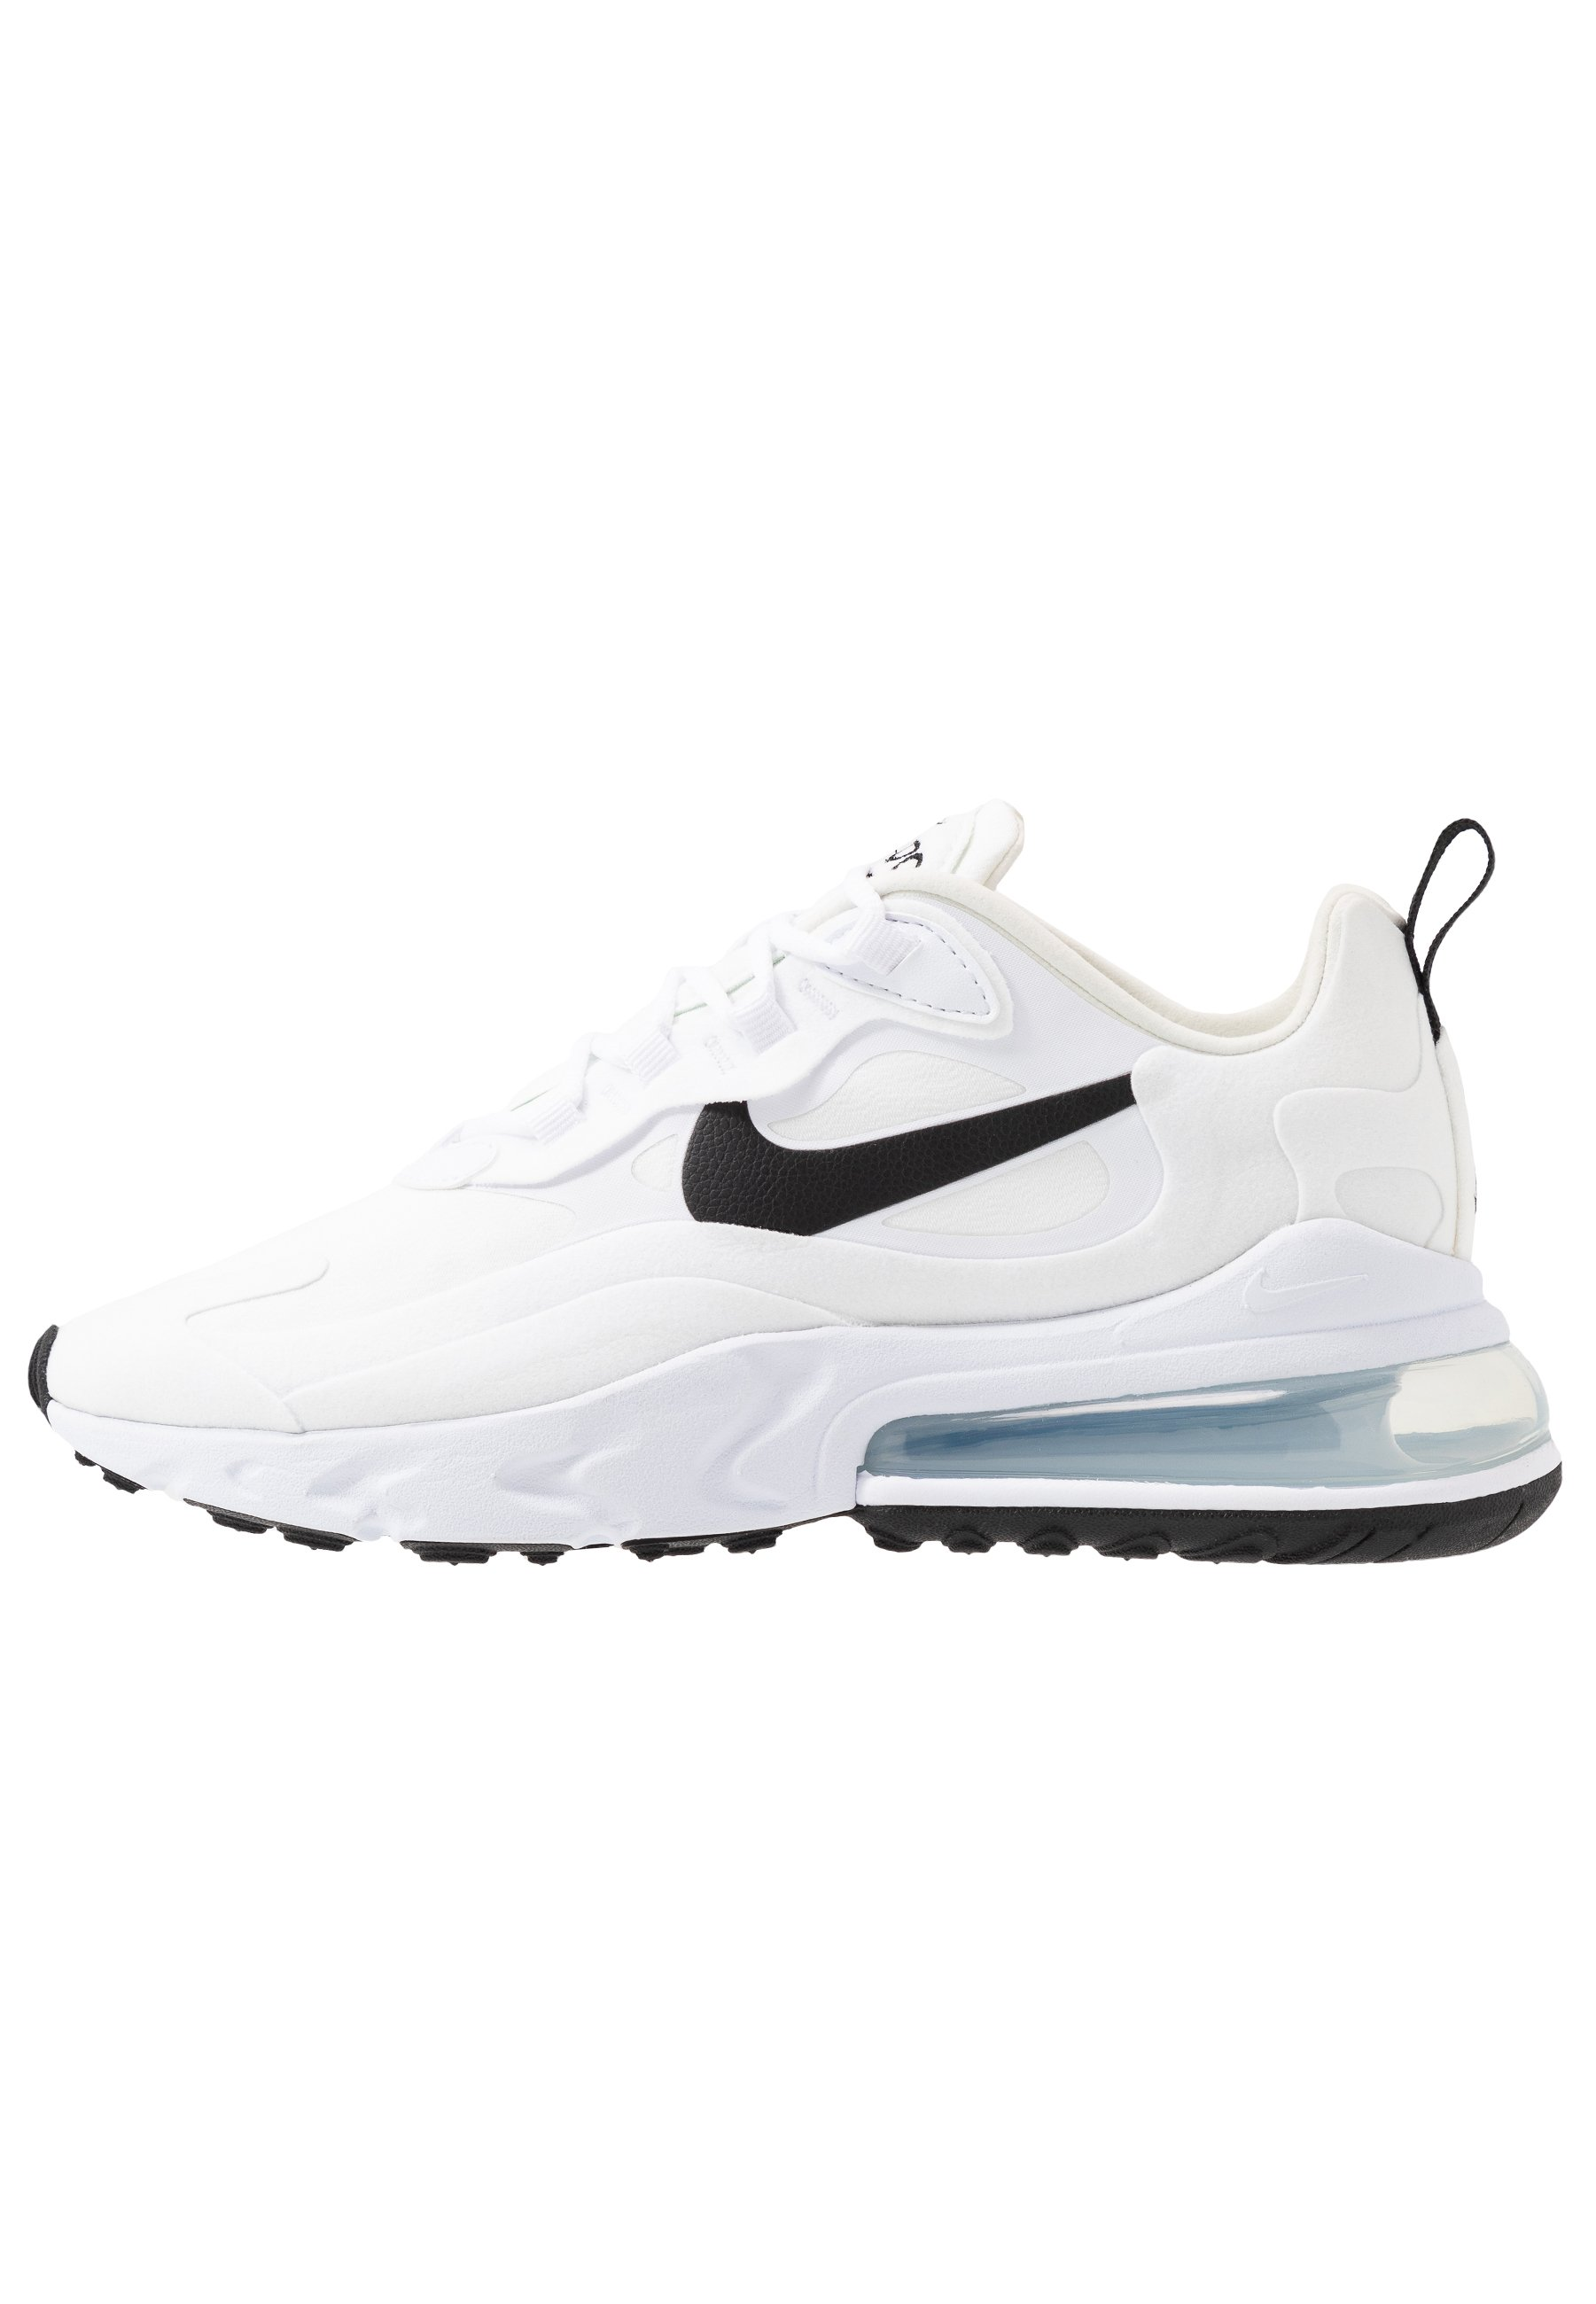 AIR MAX 270 REACT Sneakers whiteblackmetallic silver